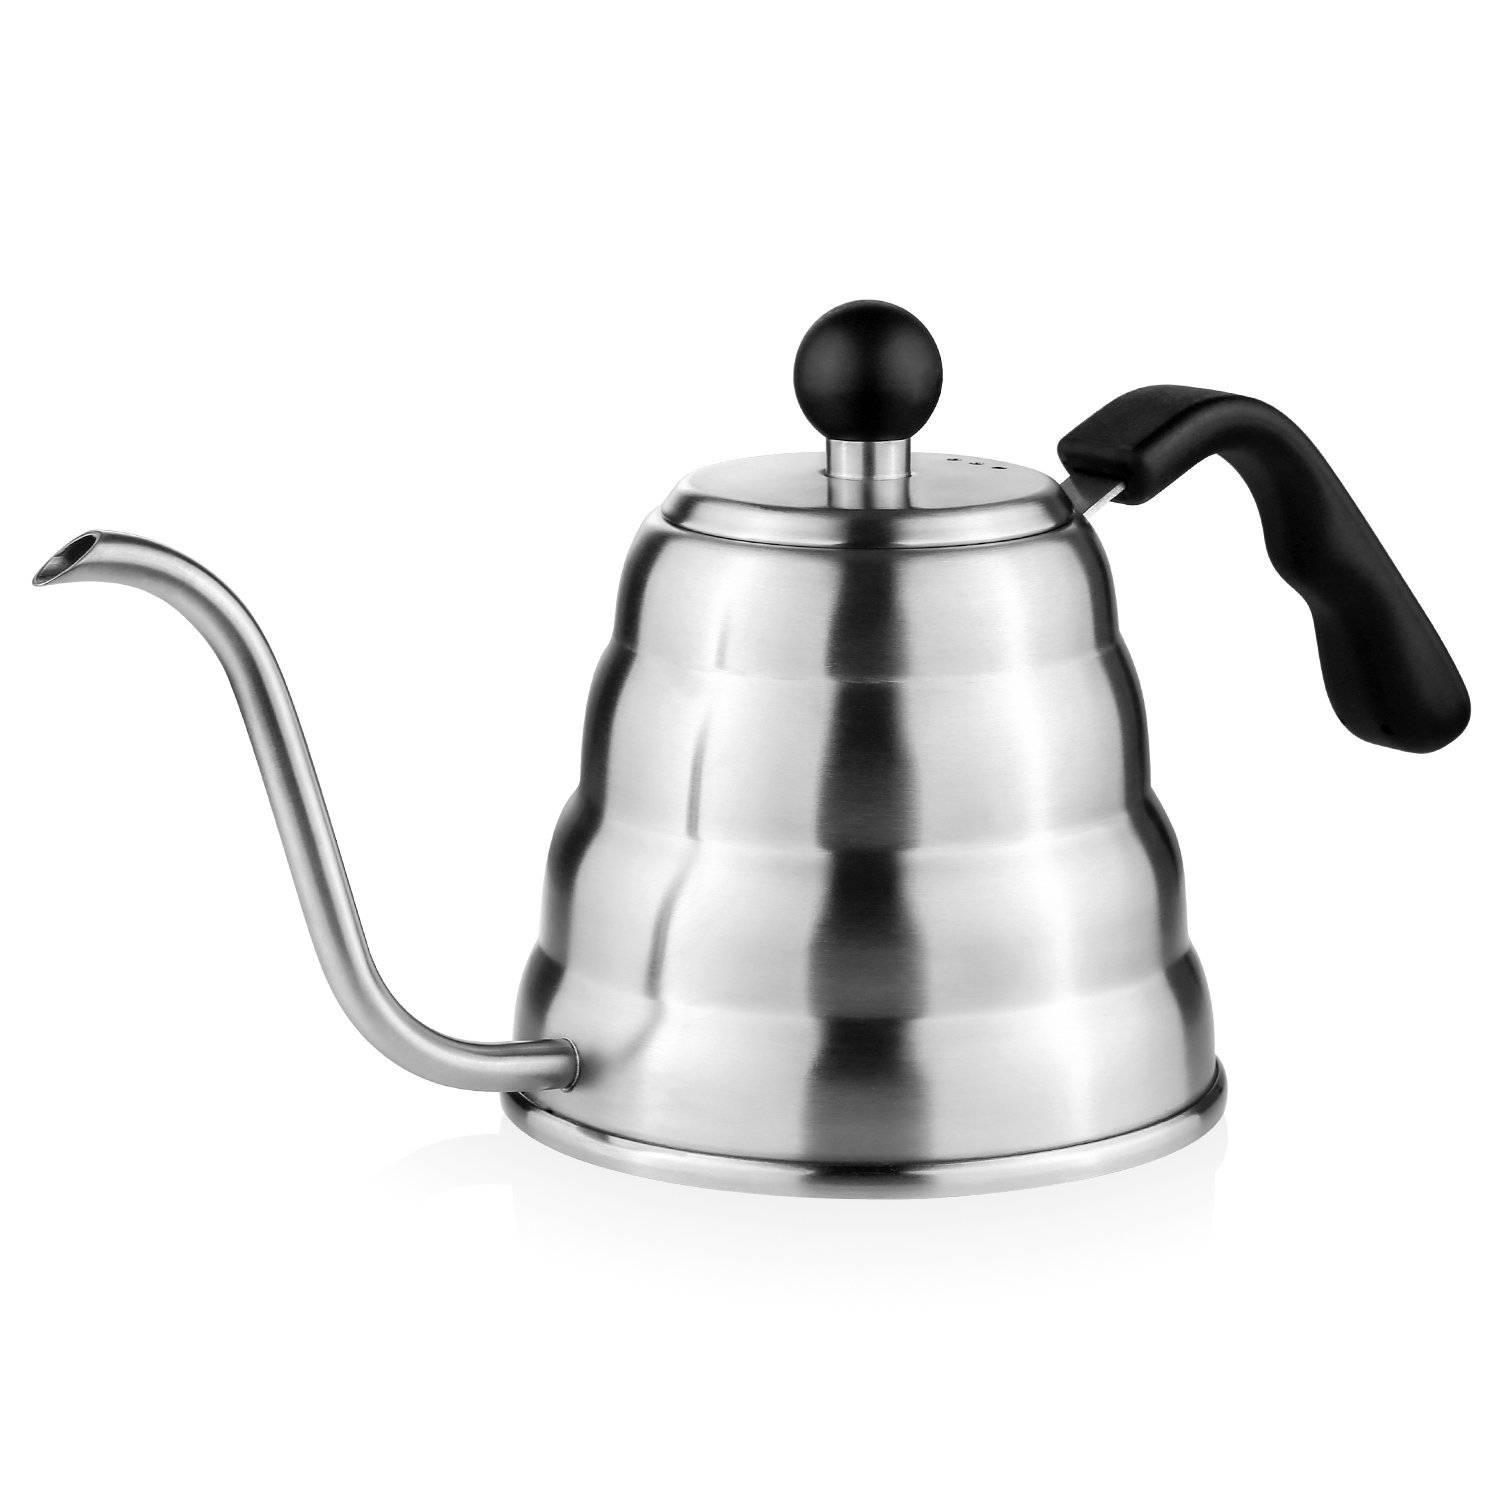 TOP Quality 304 Stainless Steel Pour Over Coffee and Tea Kettle, Drip Kettle pot coffee maker ...